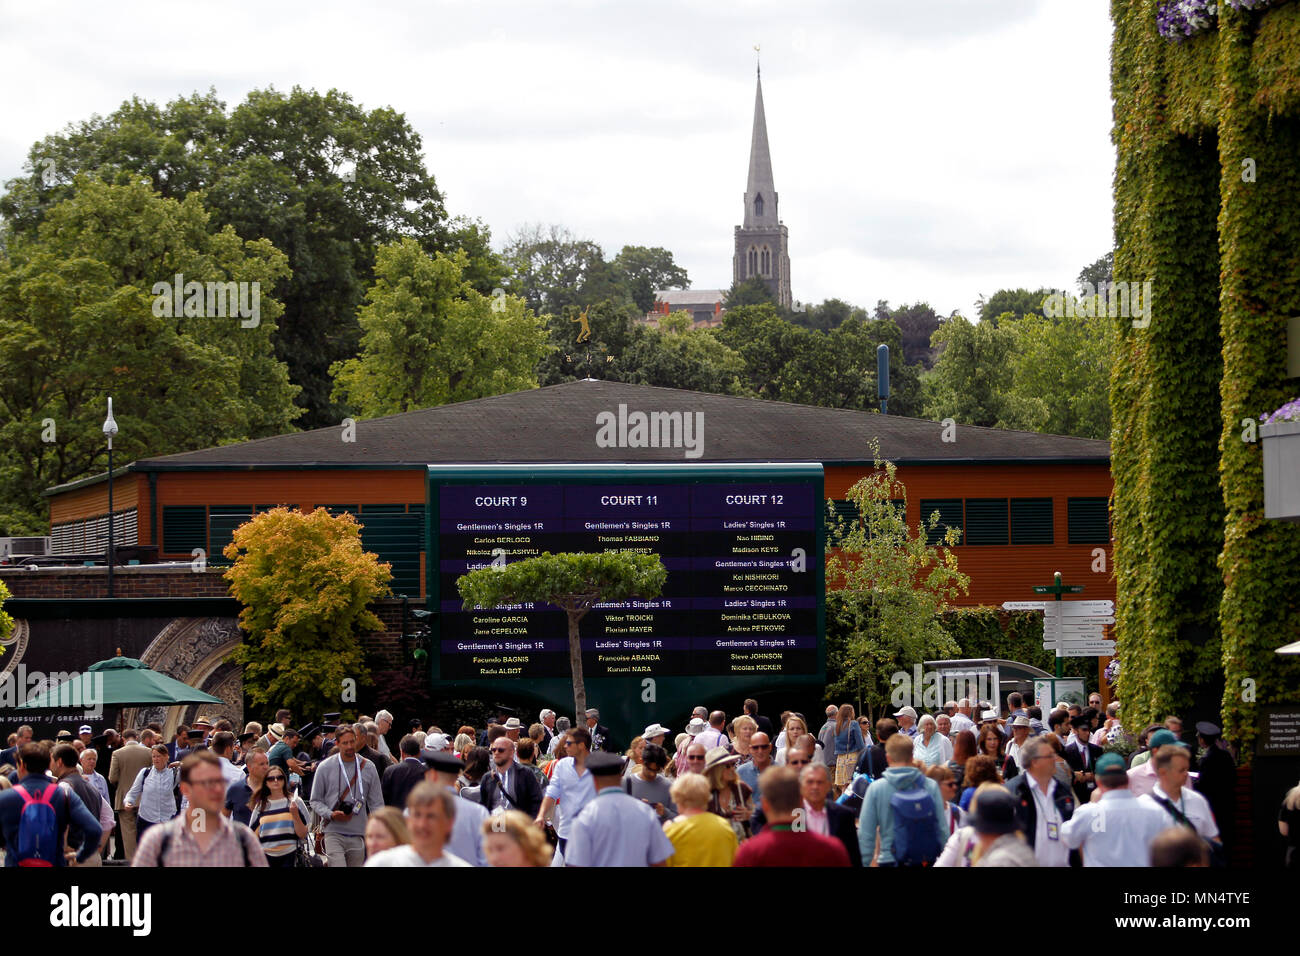 London, 3 July, 2017 - Wimbledon:  Crowds at the All England Club on the opening day of Wimbledon - Stock Image